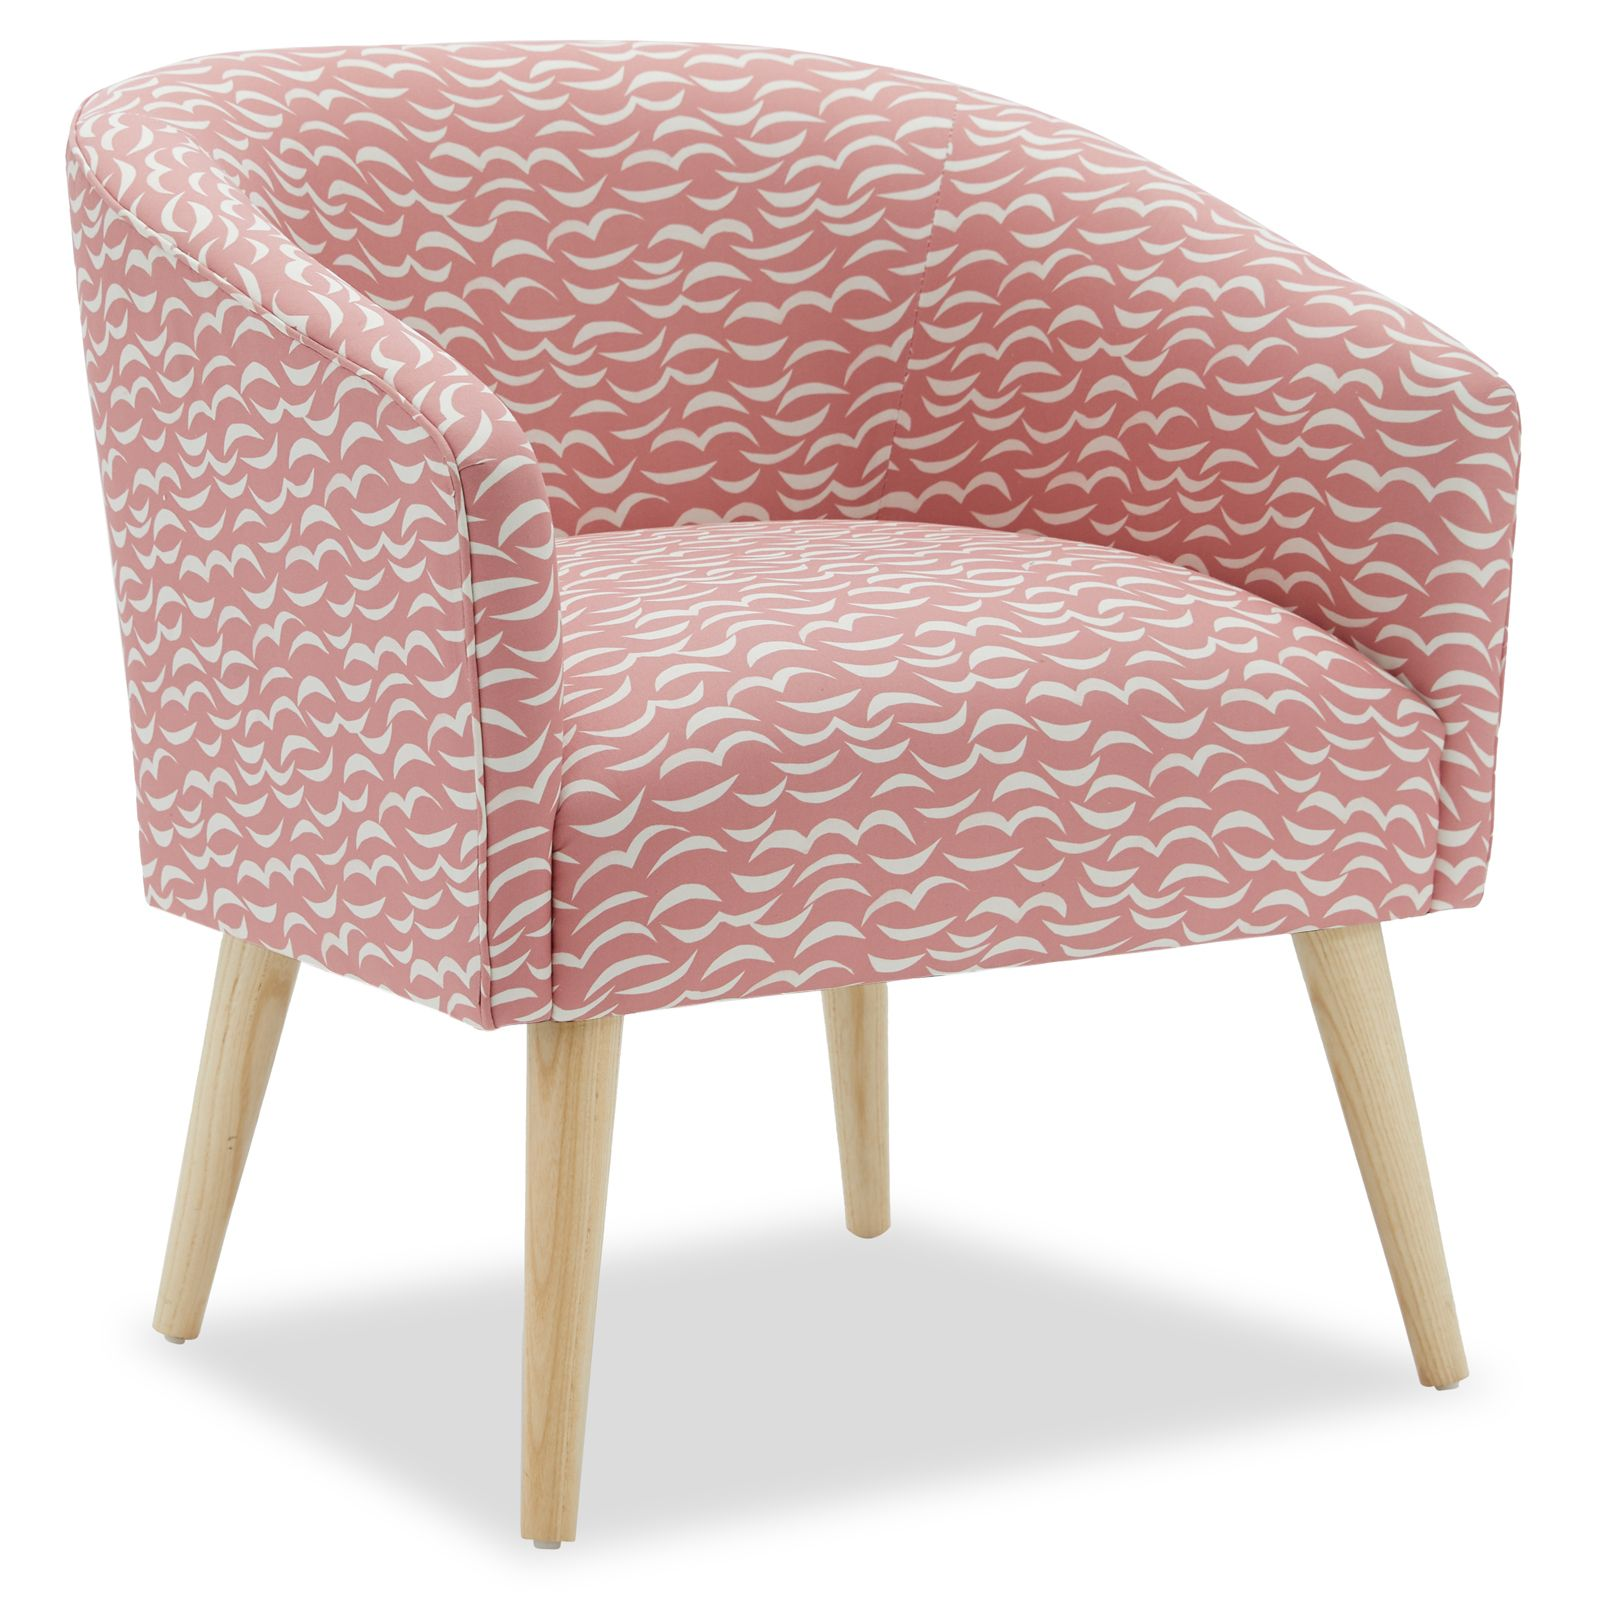 Miraculous Crescent Moon Barrel Accent Chair By Drew Barrymore Flower Uwap Interior Chair Design Uwaporg